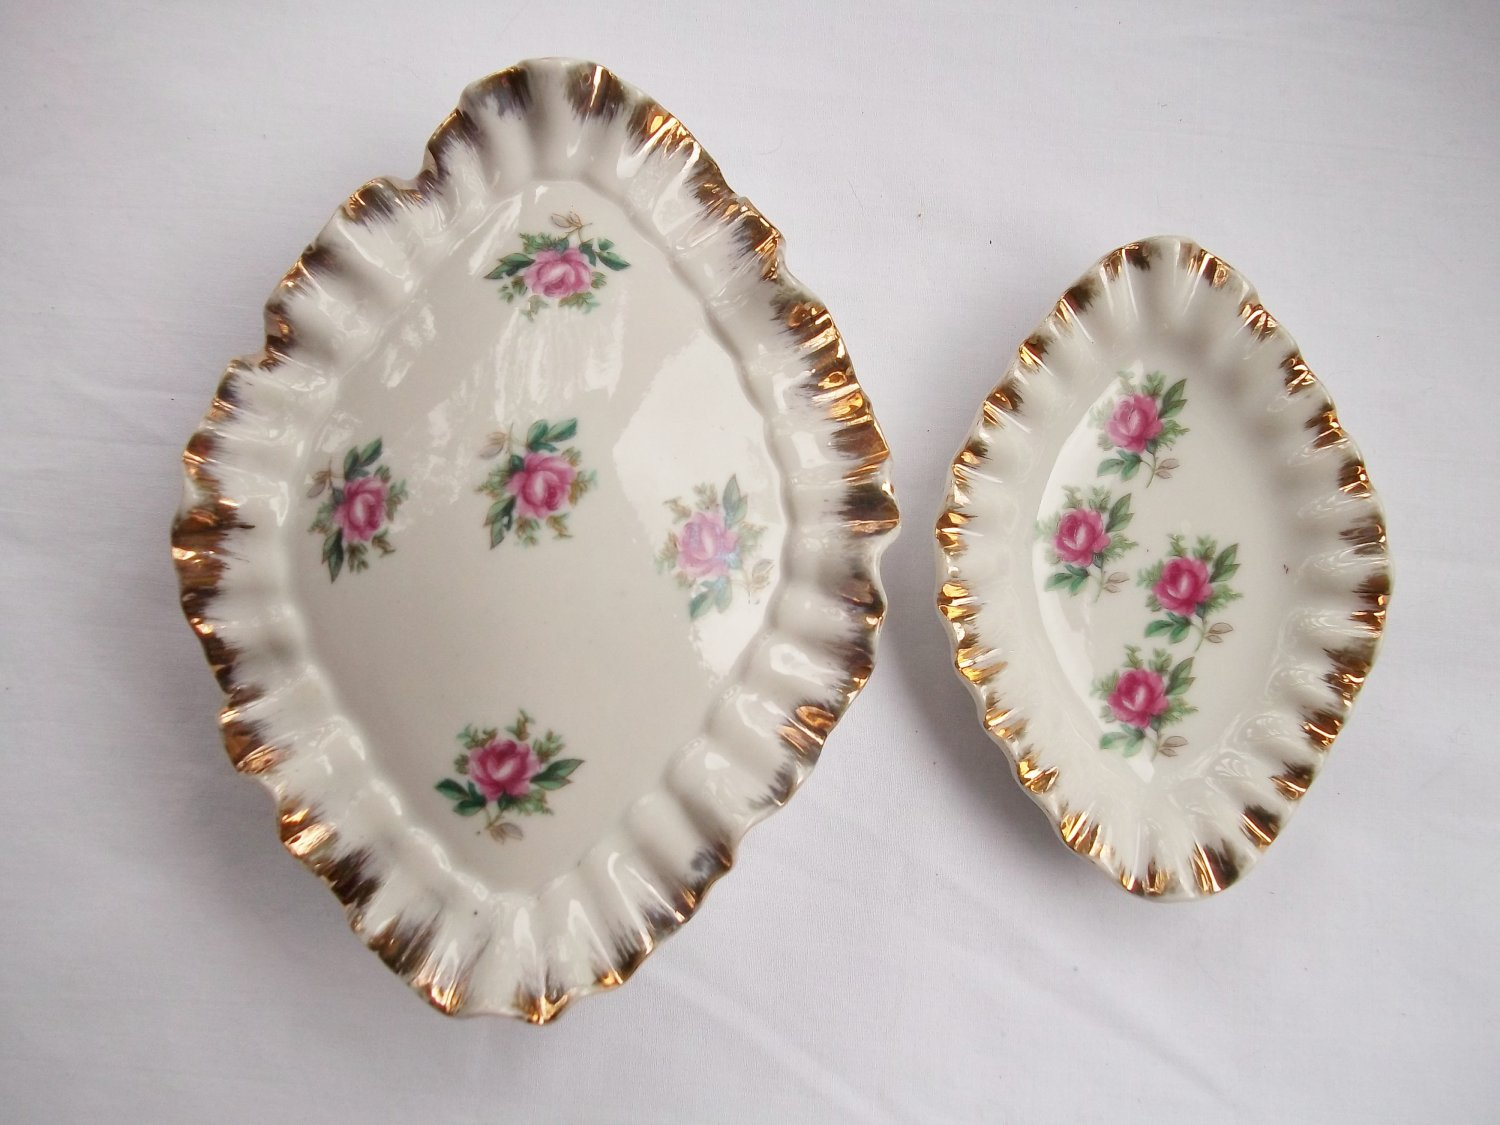 VINTAGE PORCELAIN COVERED TRINKET DISH AND MATCHING TRAY